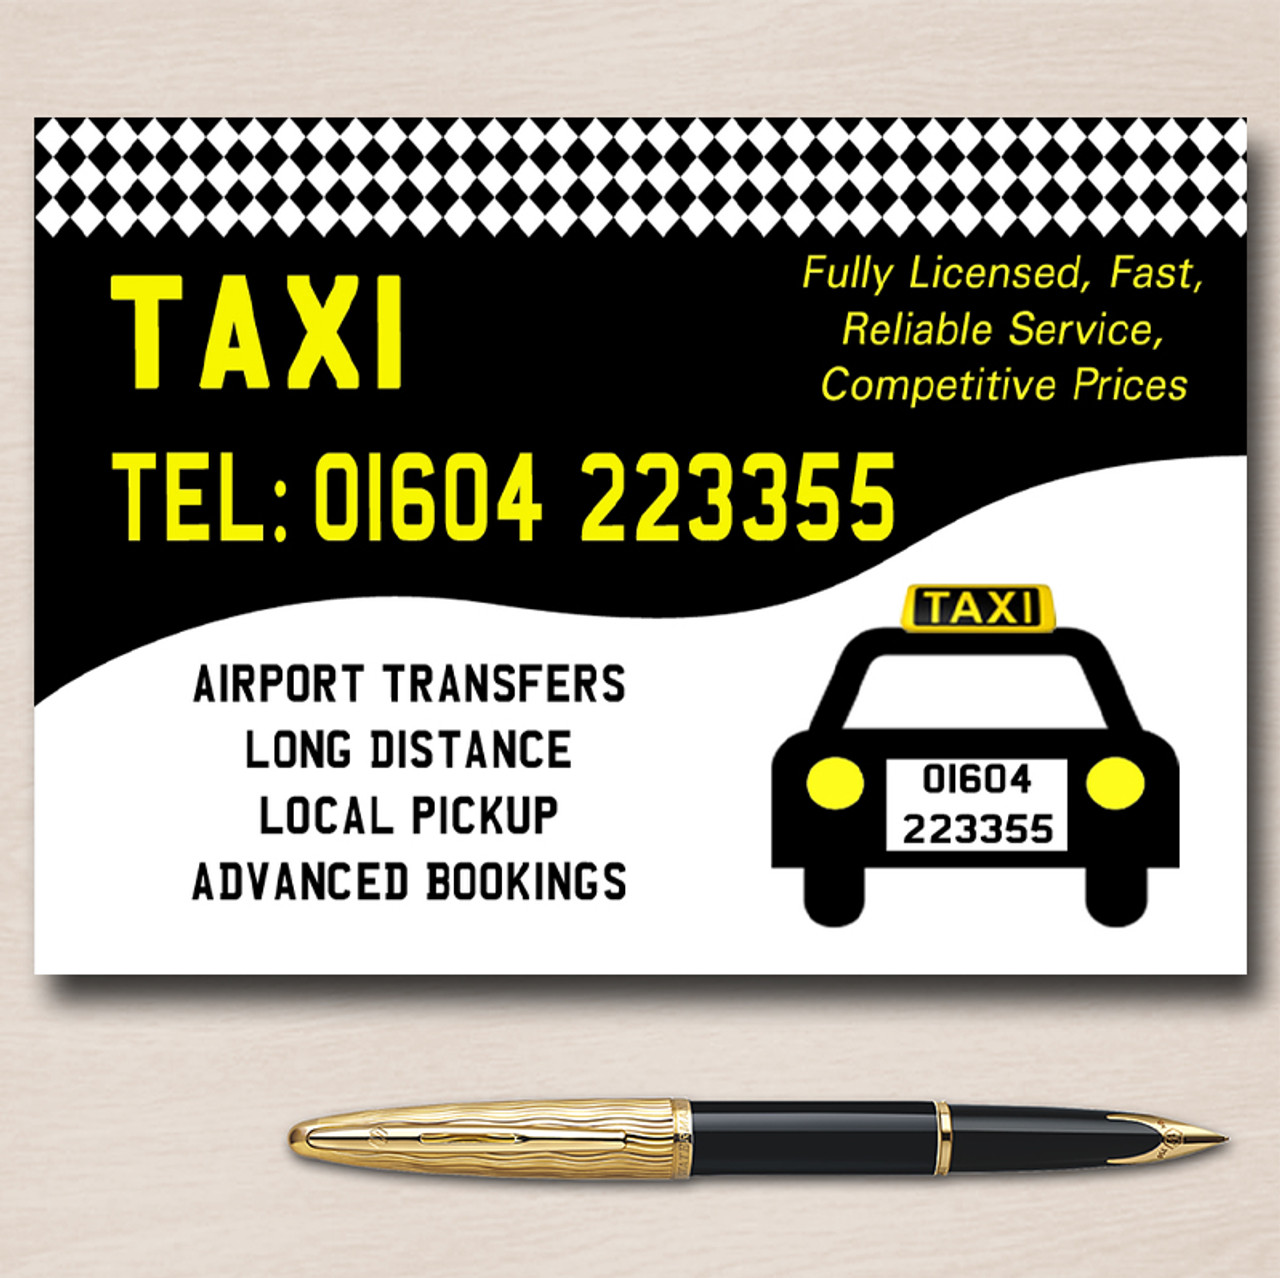 Taxi black cab personalised business cards taxi black cab personalised business cards colourmoves